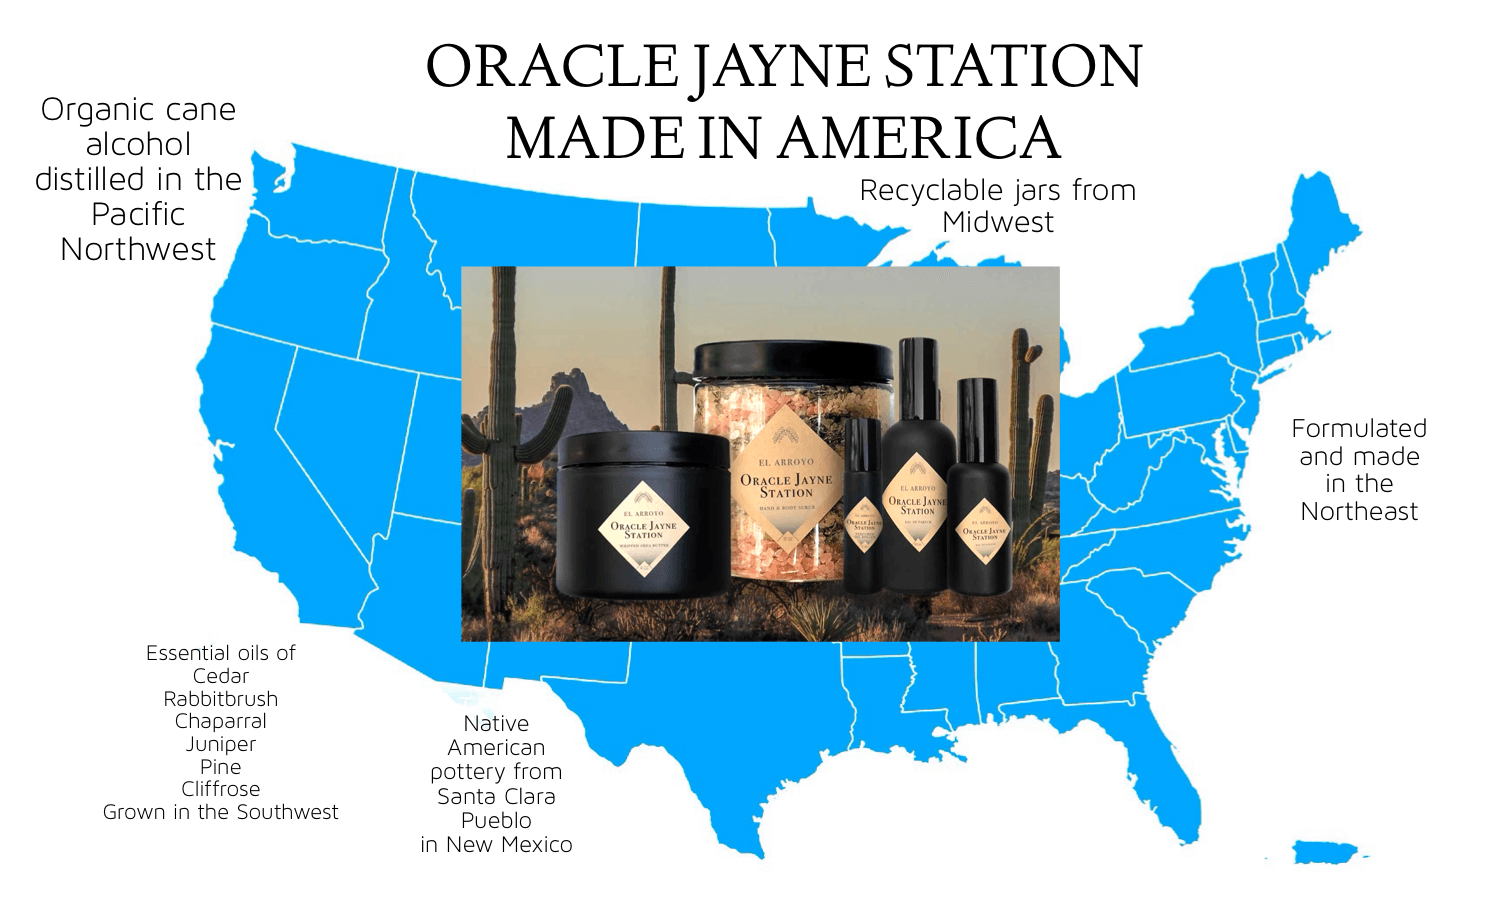 Oracle Jayne Station - Made in America